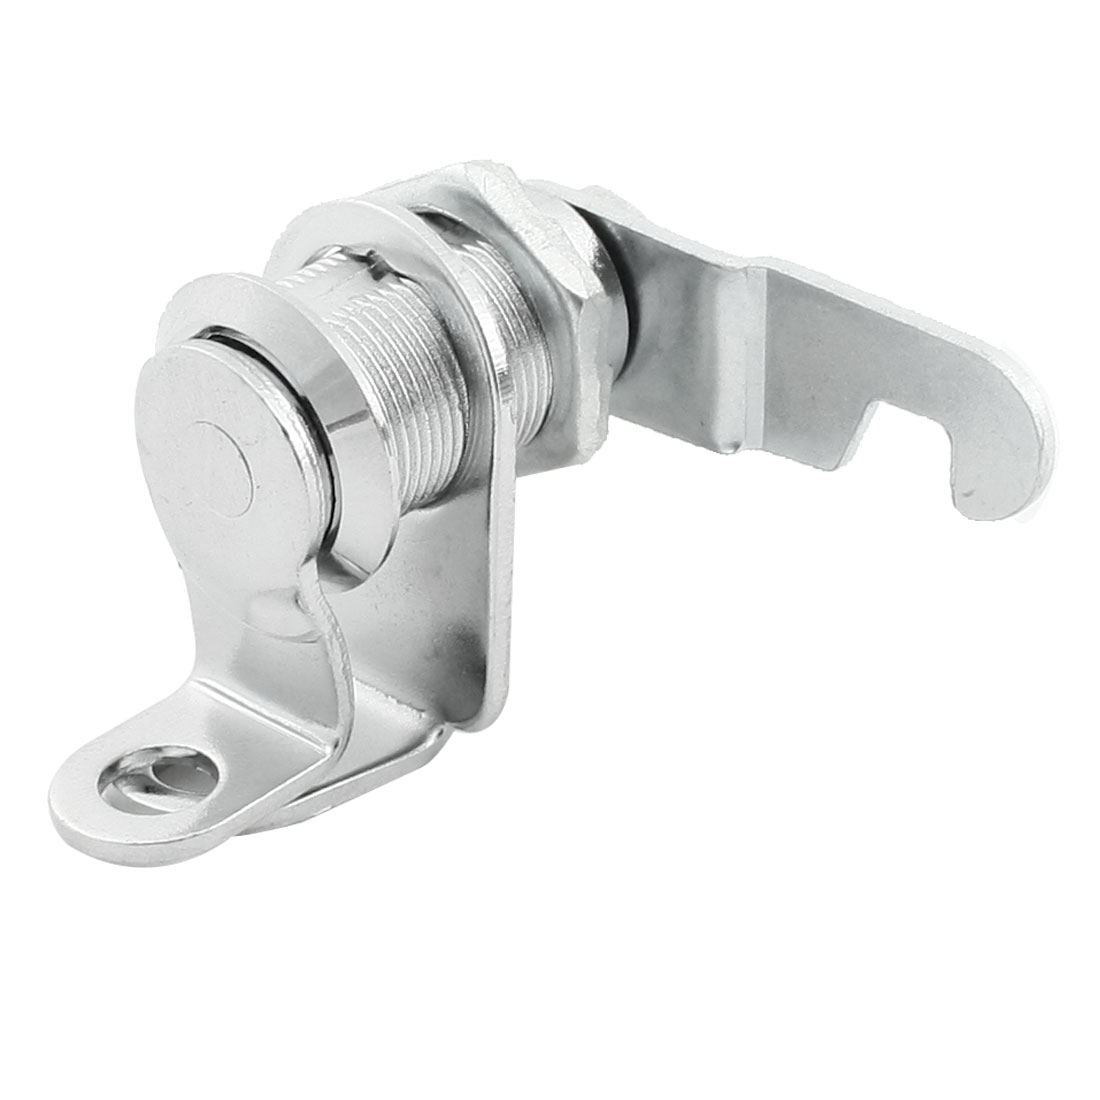 Silver Tone 17.4mm Dia Cylinder Straight Flat Closet Door Cam Lock